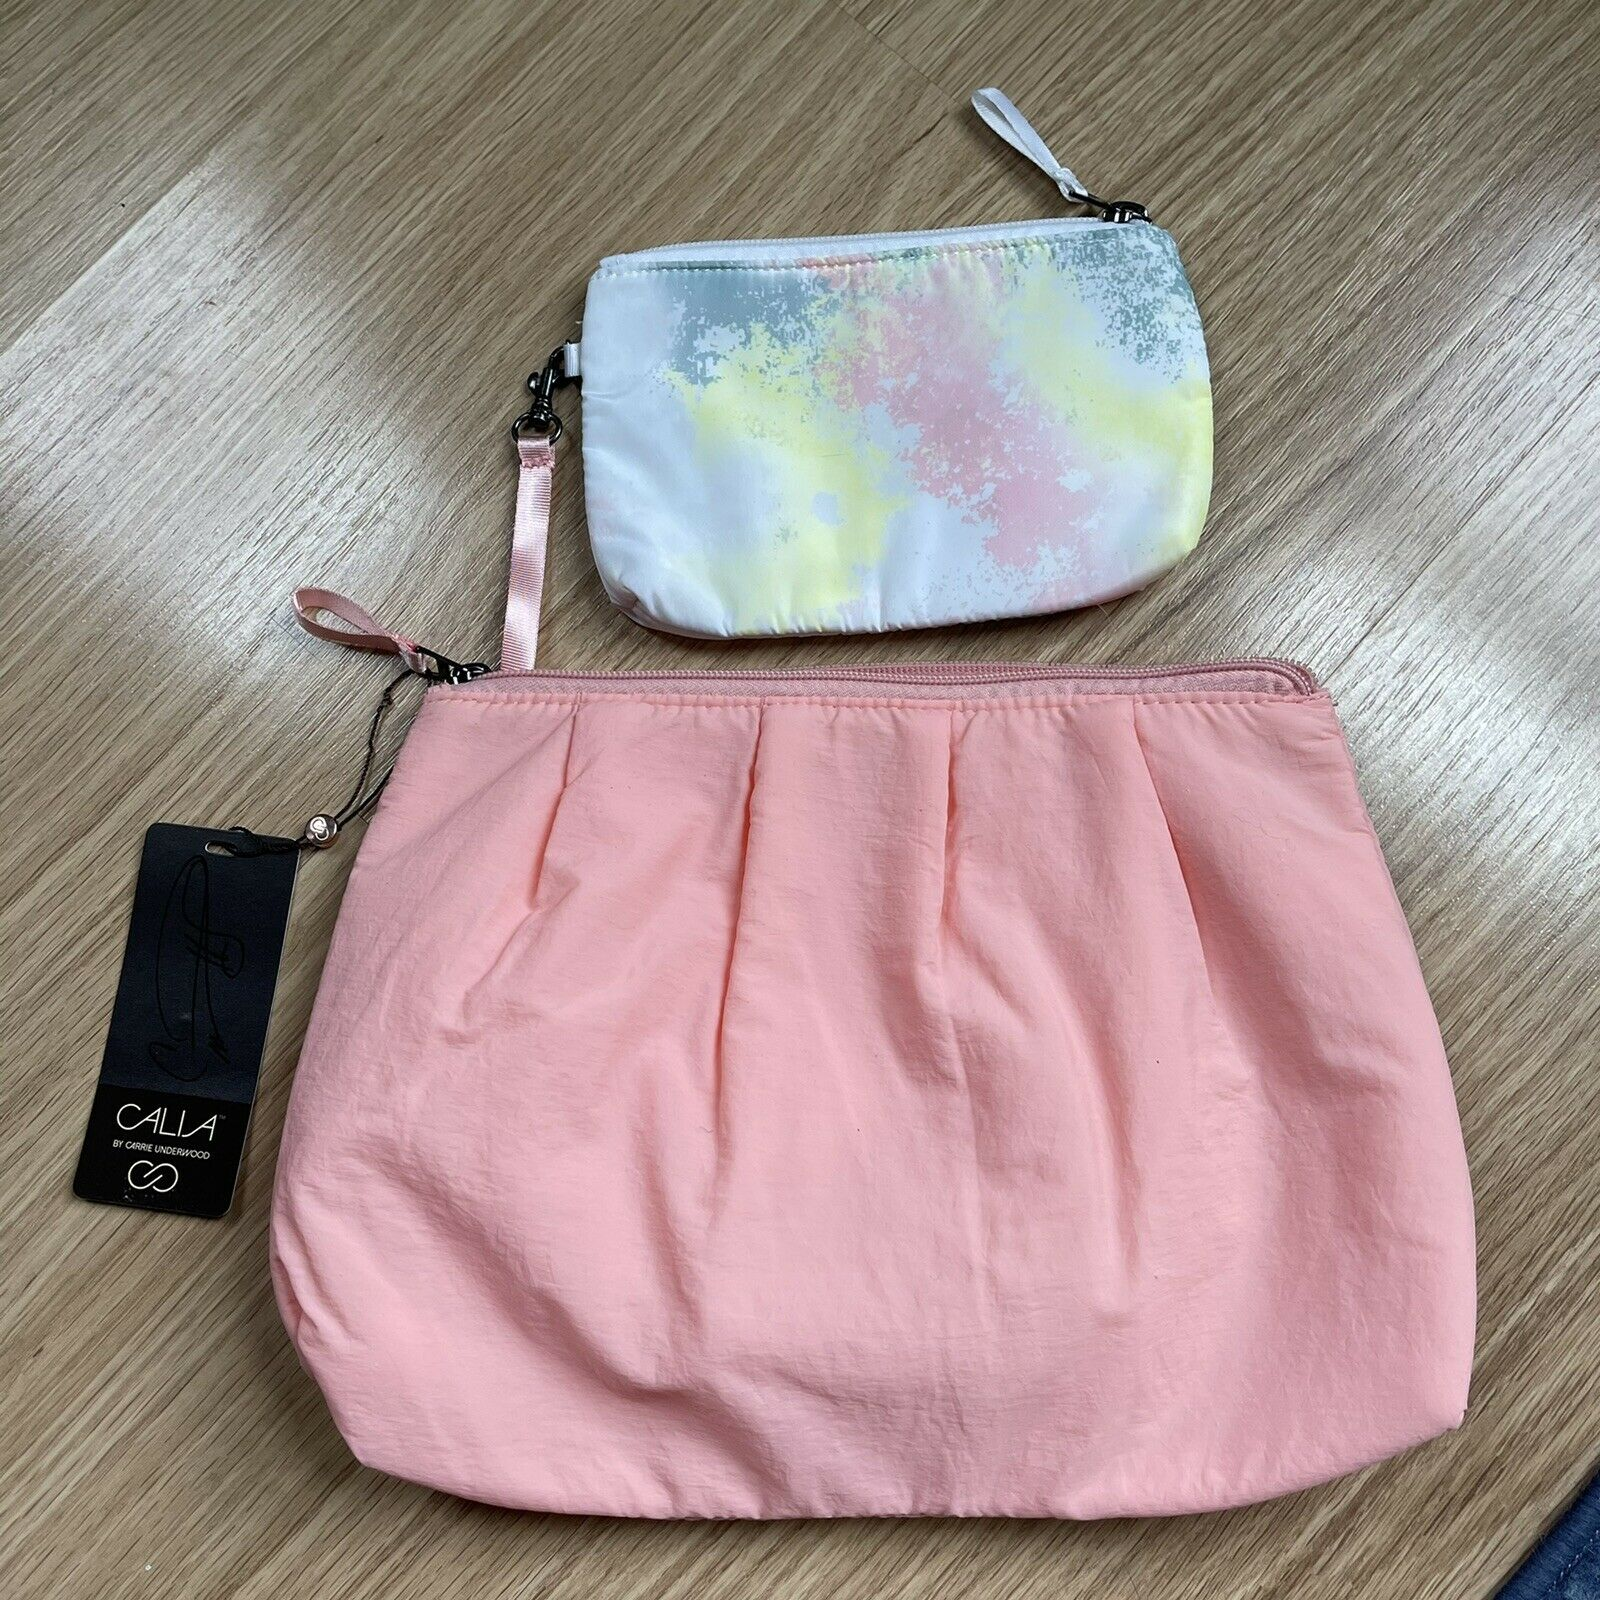 NEW WITH TAGS CALIA TRAVEL POUCH SET SUGAR ROSE WITH SMALL TIE DYE POUCH INSIDE